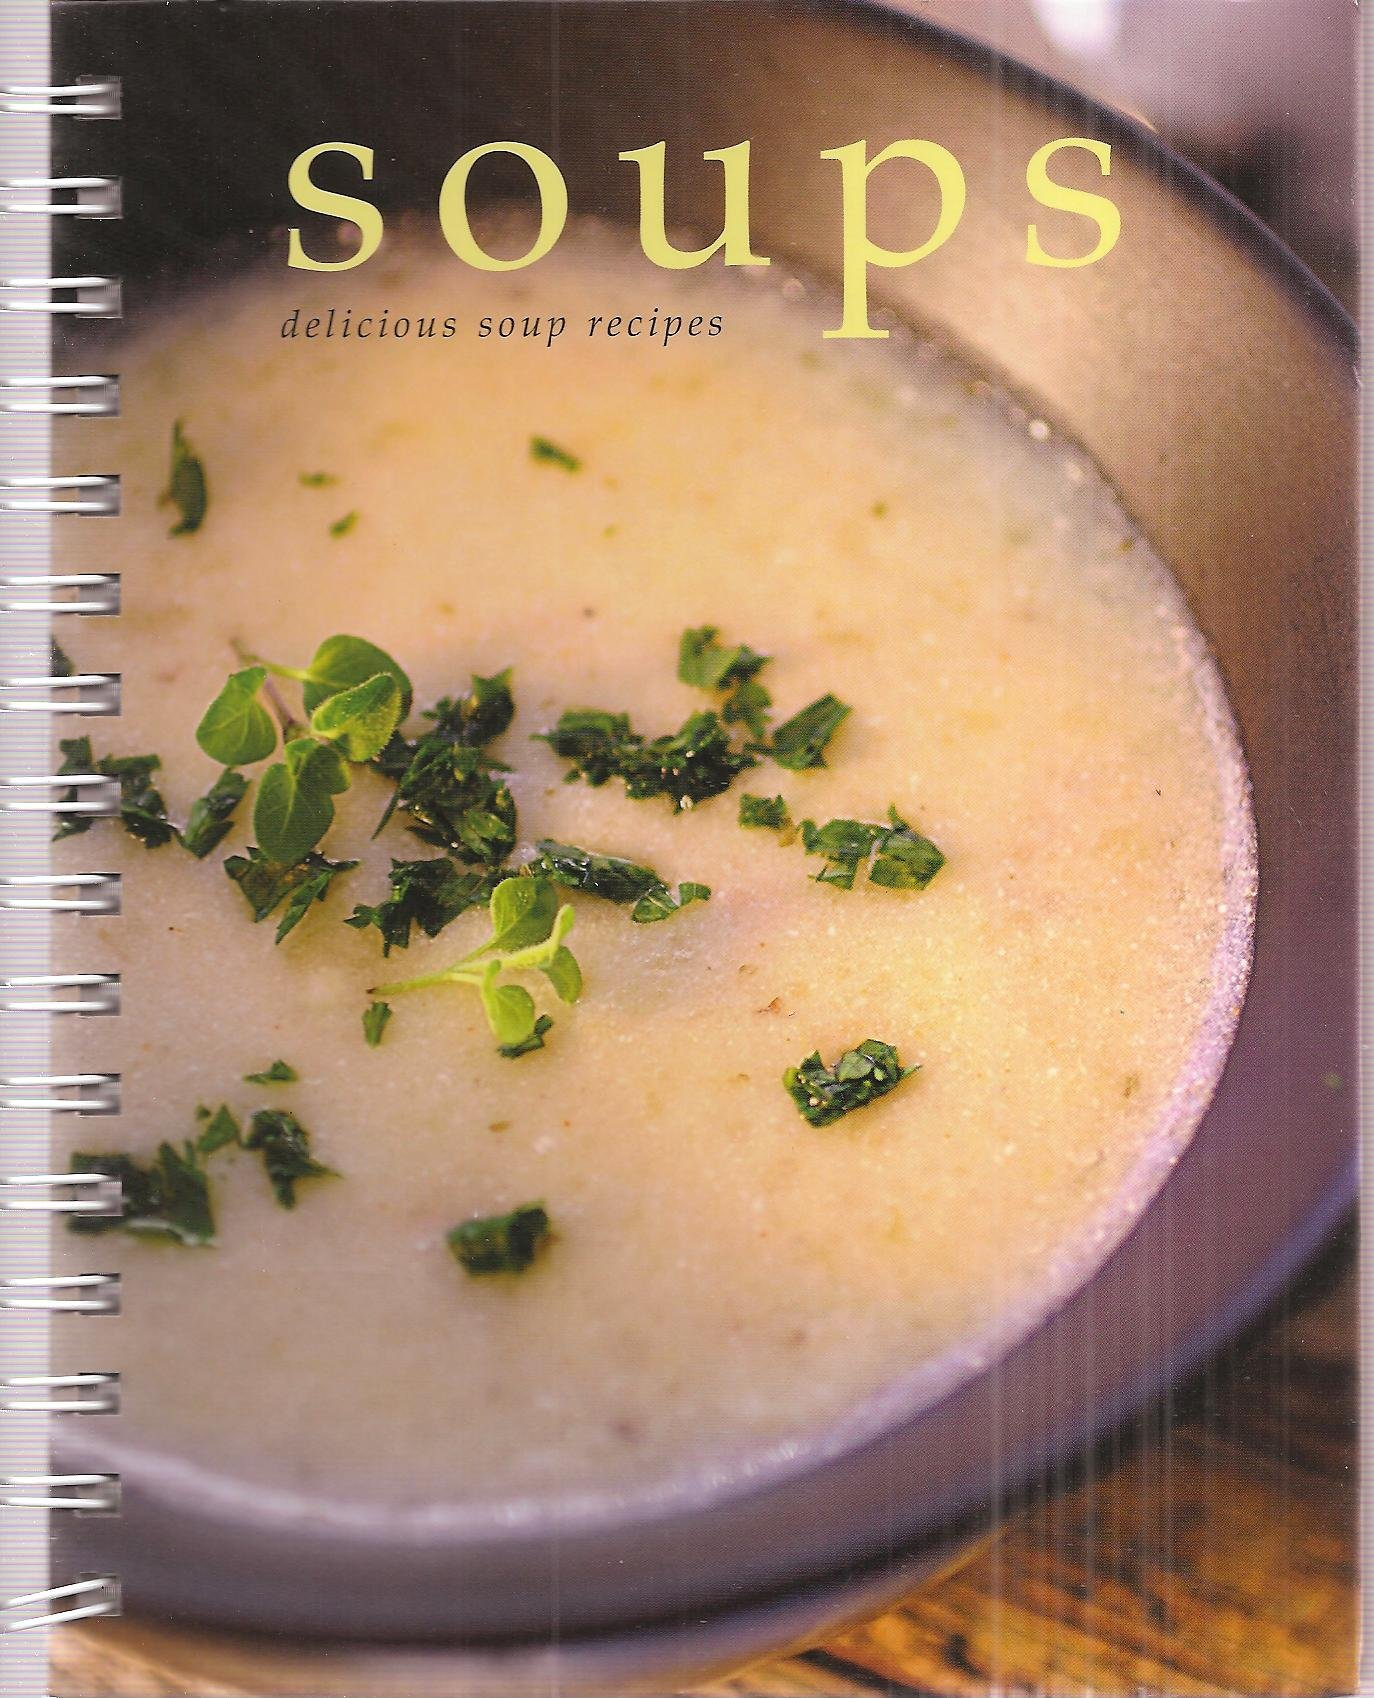 Soups Delicious Soup Recipes Chilled Soups Winter Warmers Seafood Meat Poultry Vegetarian European Soups Exotic Soups Amazon Com Books